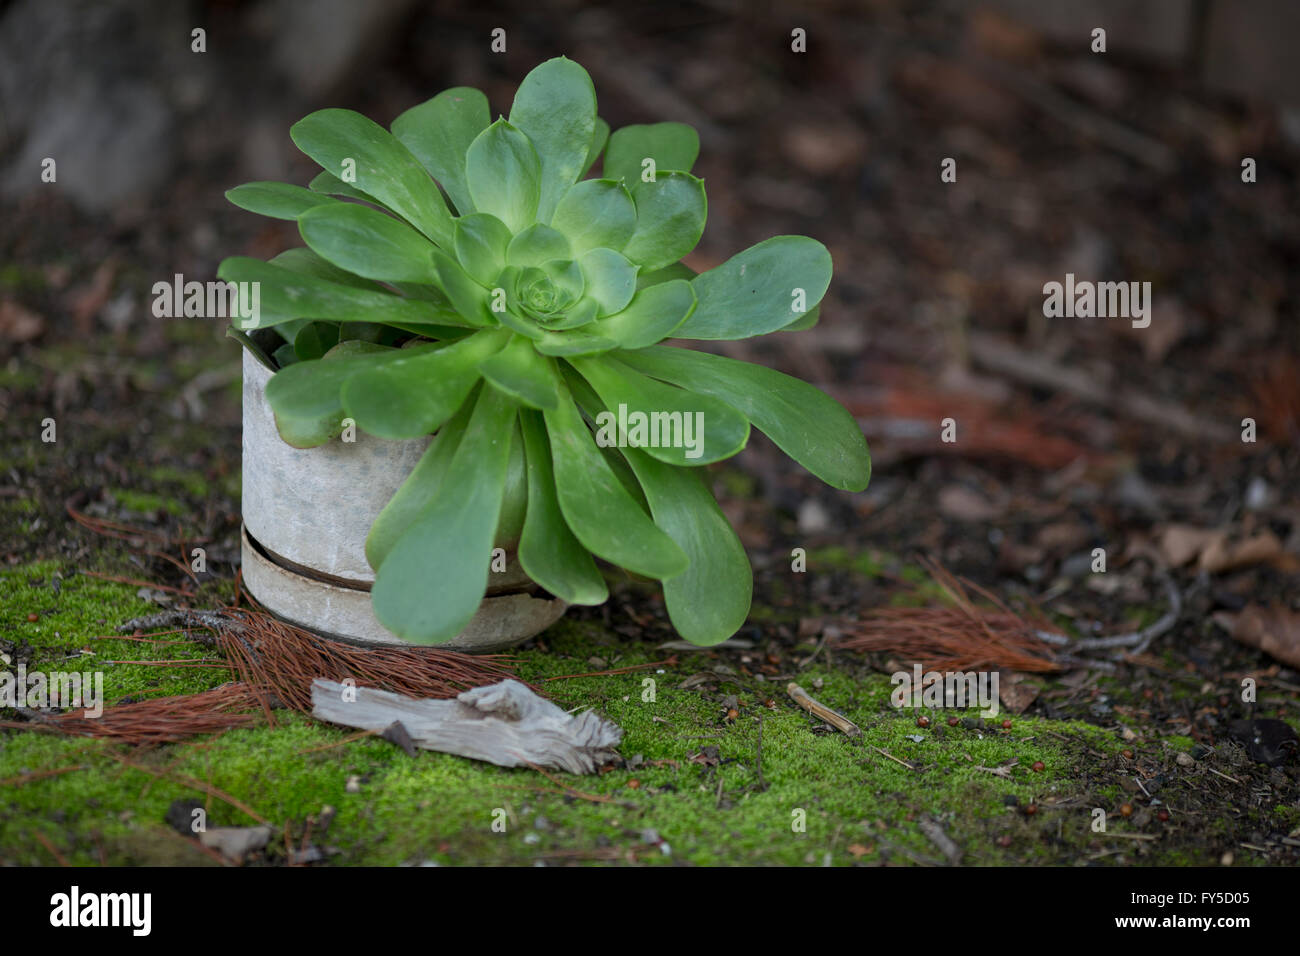 large Aeonium succulent potted plant near beautiful mossy ground cover - Stock Image